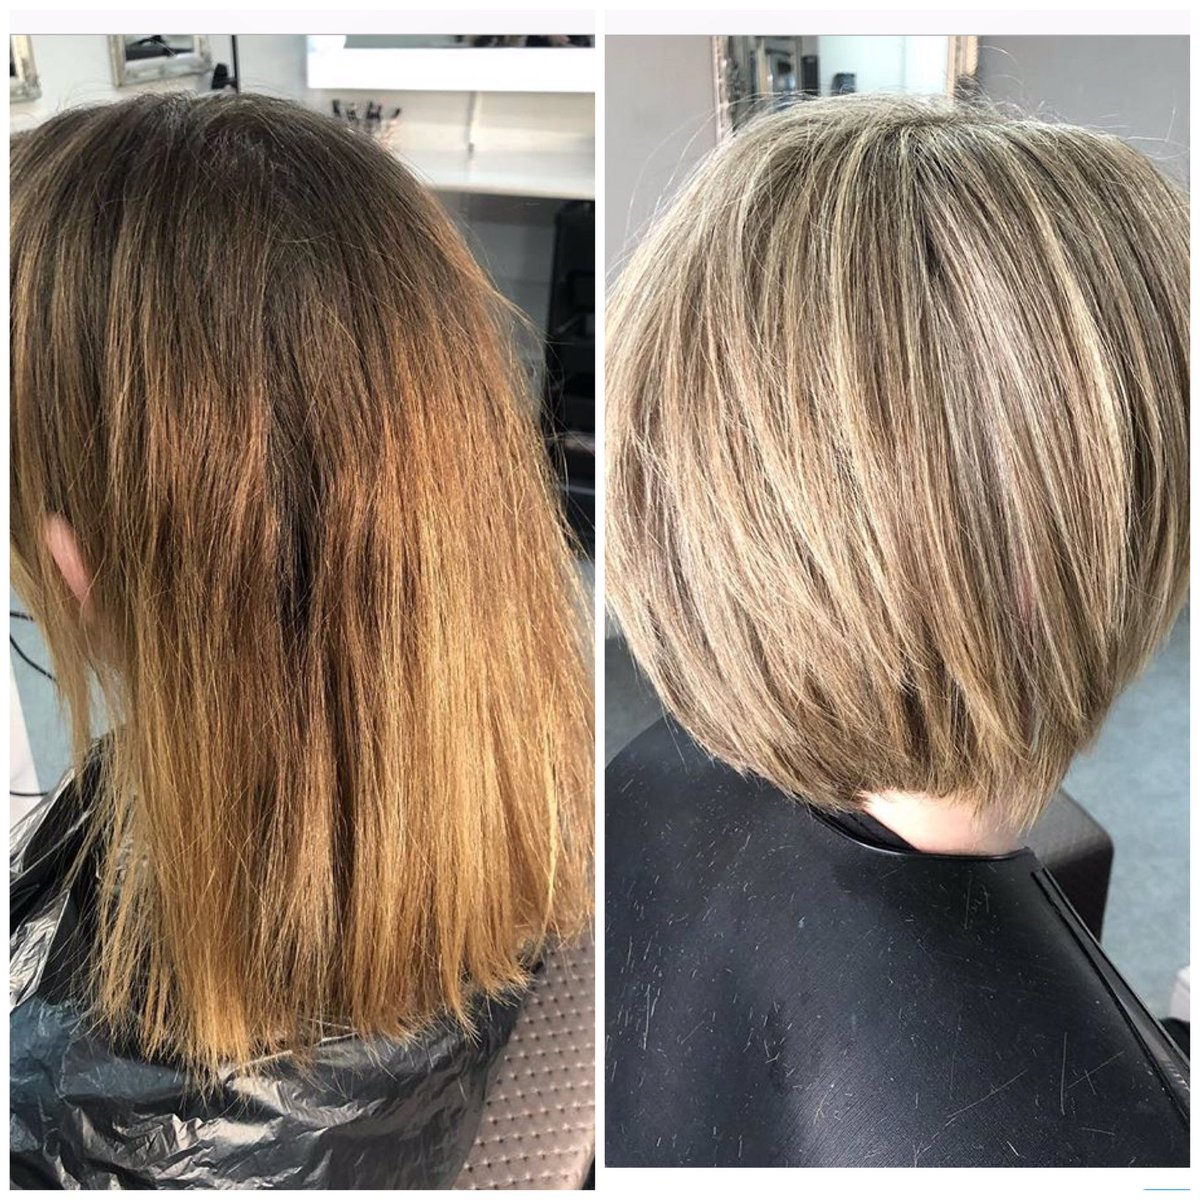 House Of Finesse On Twitter Hair Transformation Massive